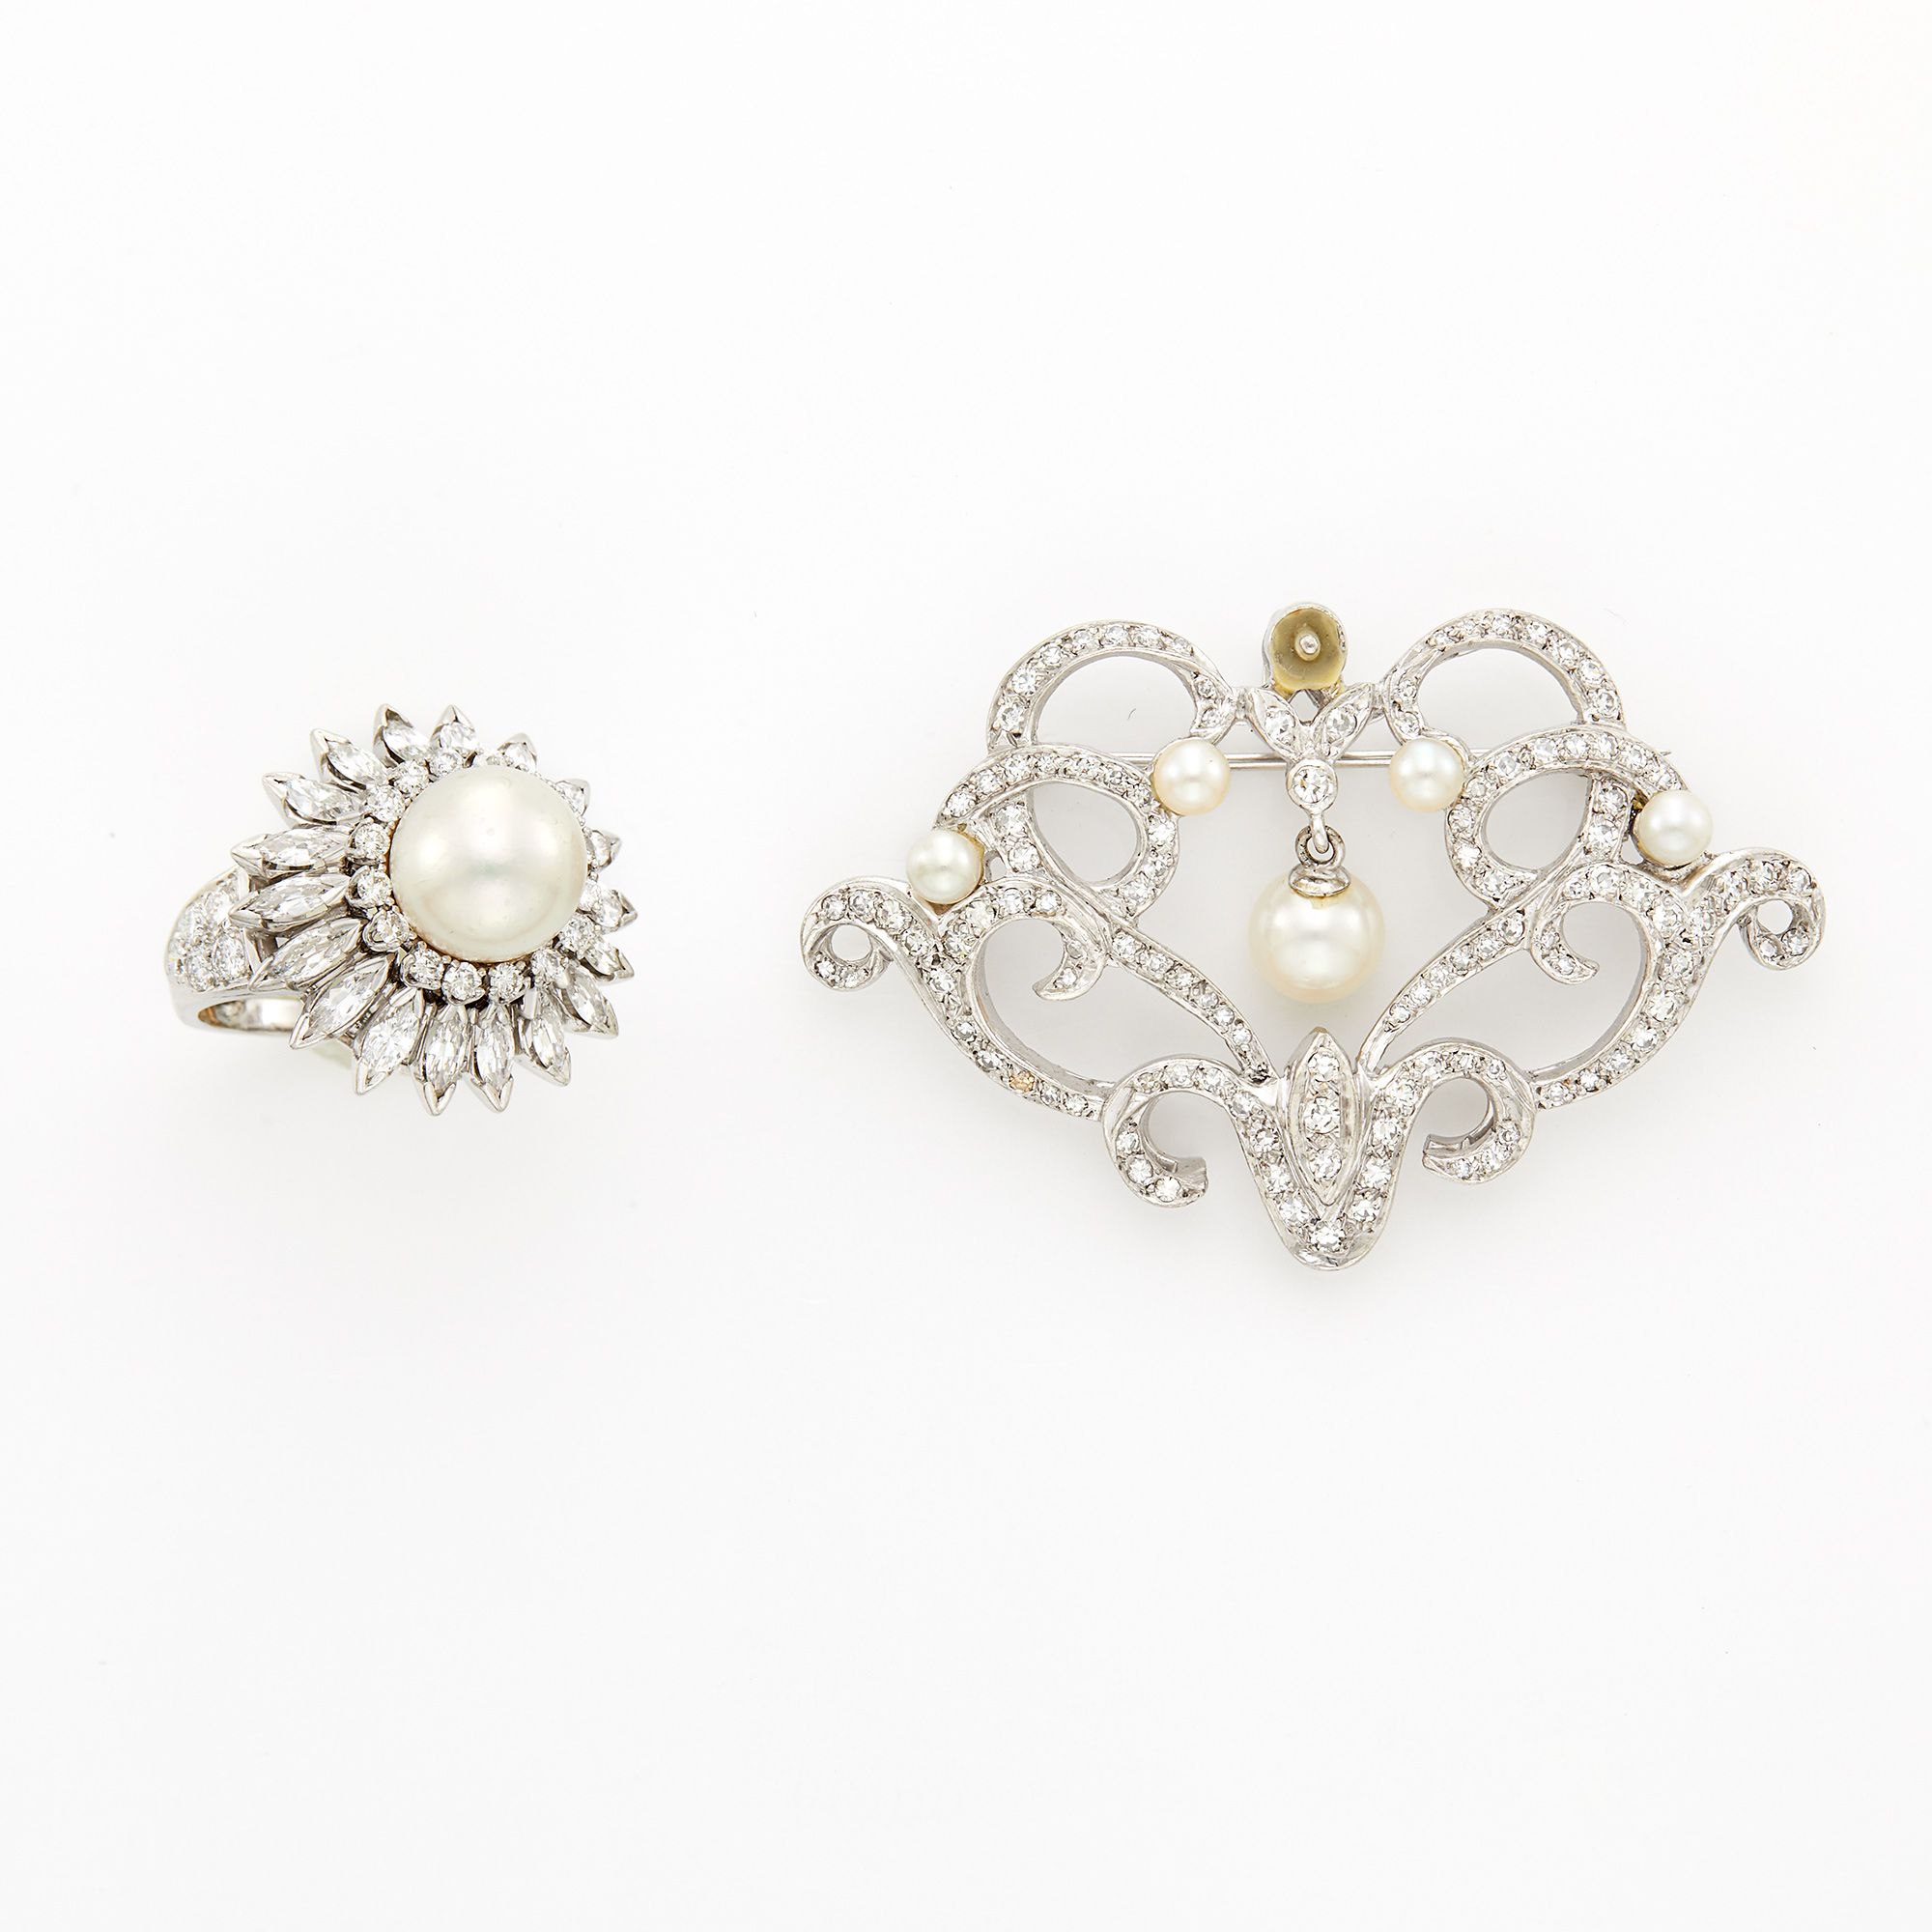 Lot image - White Gold, Diamond and Cultured Pearl Brooch and Platinum, Cultured Pearl and Diamond Ring